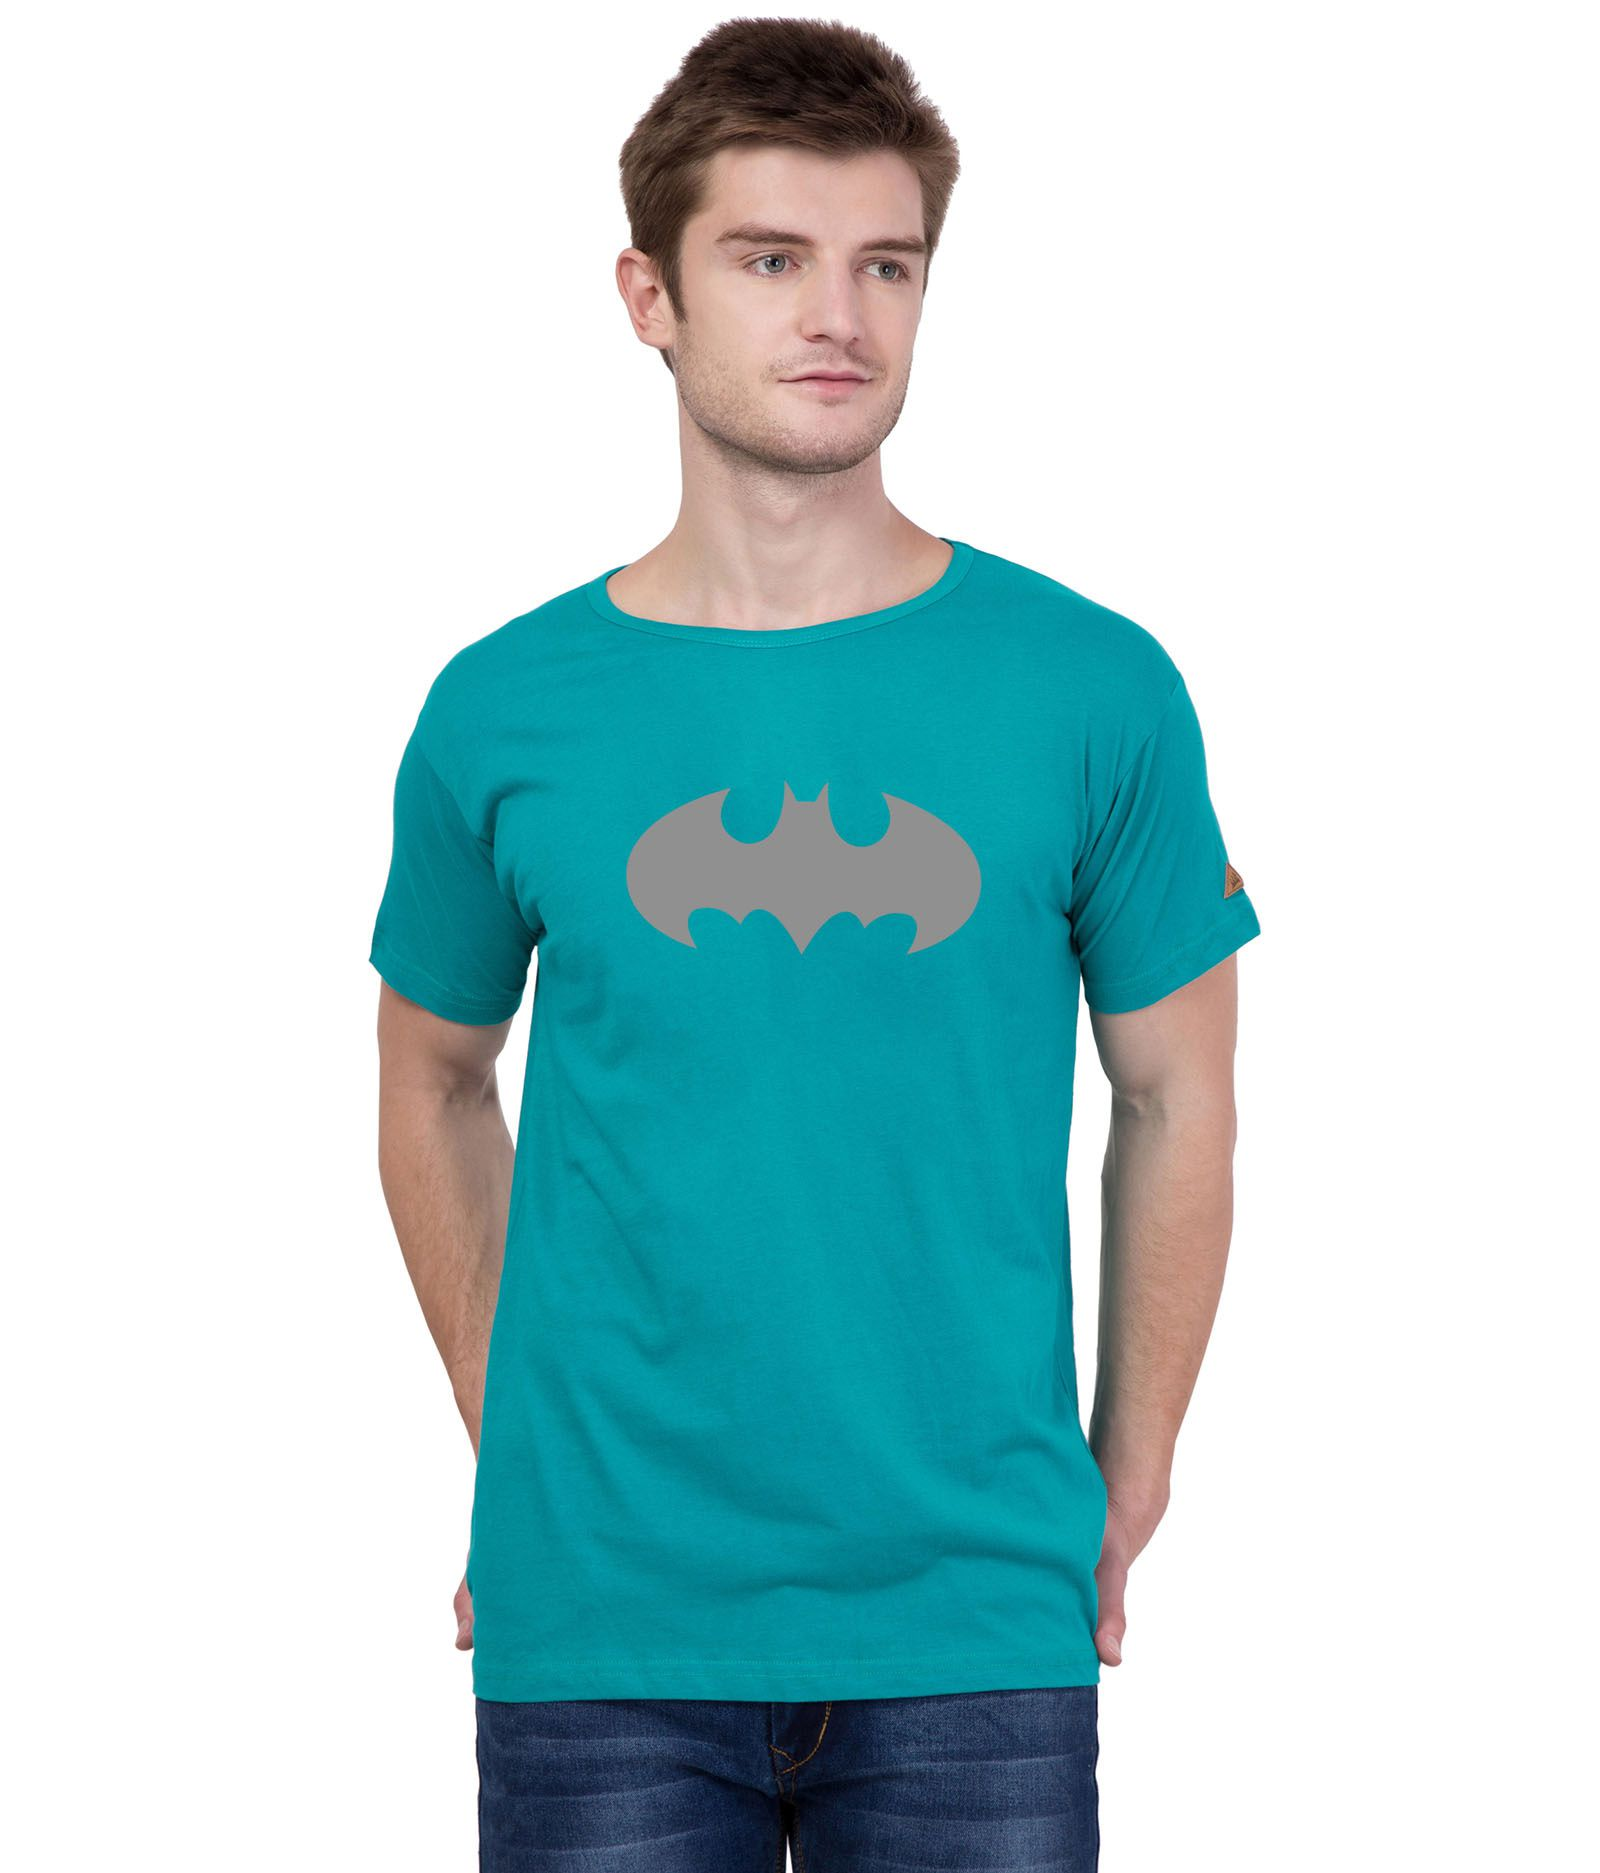 American-Elm Turquoise Round T-Shirt Pack of 1